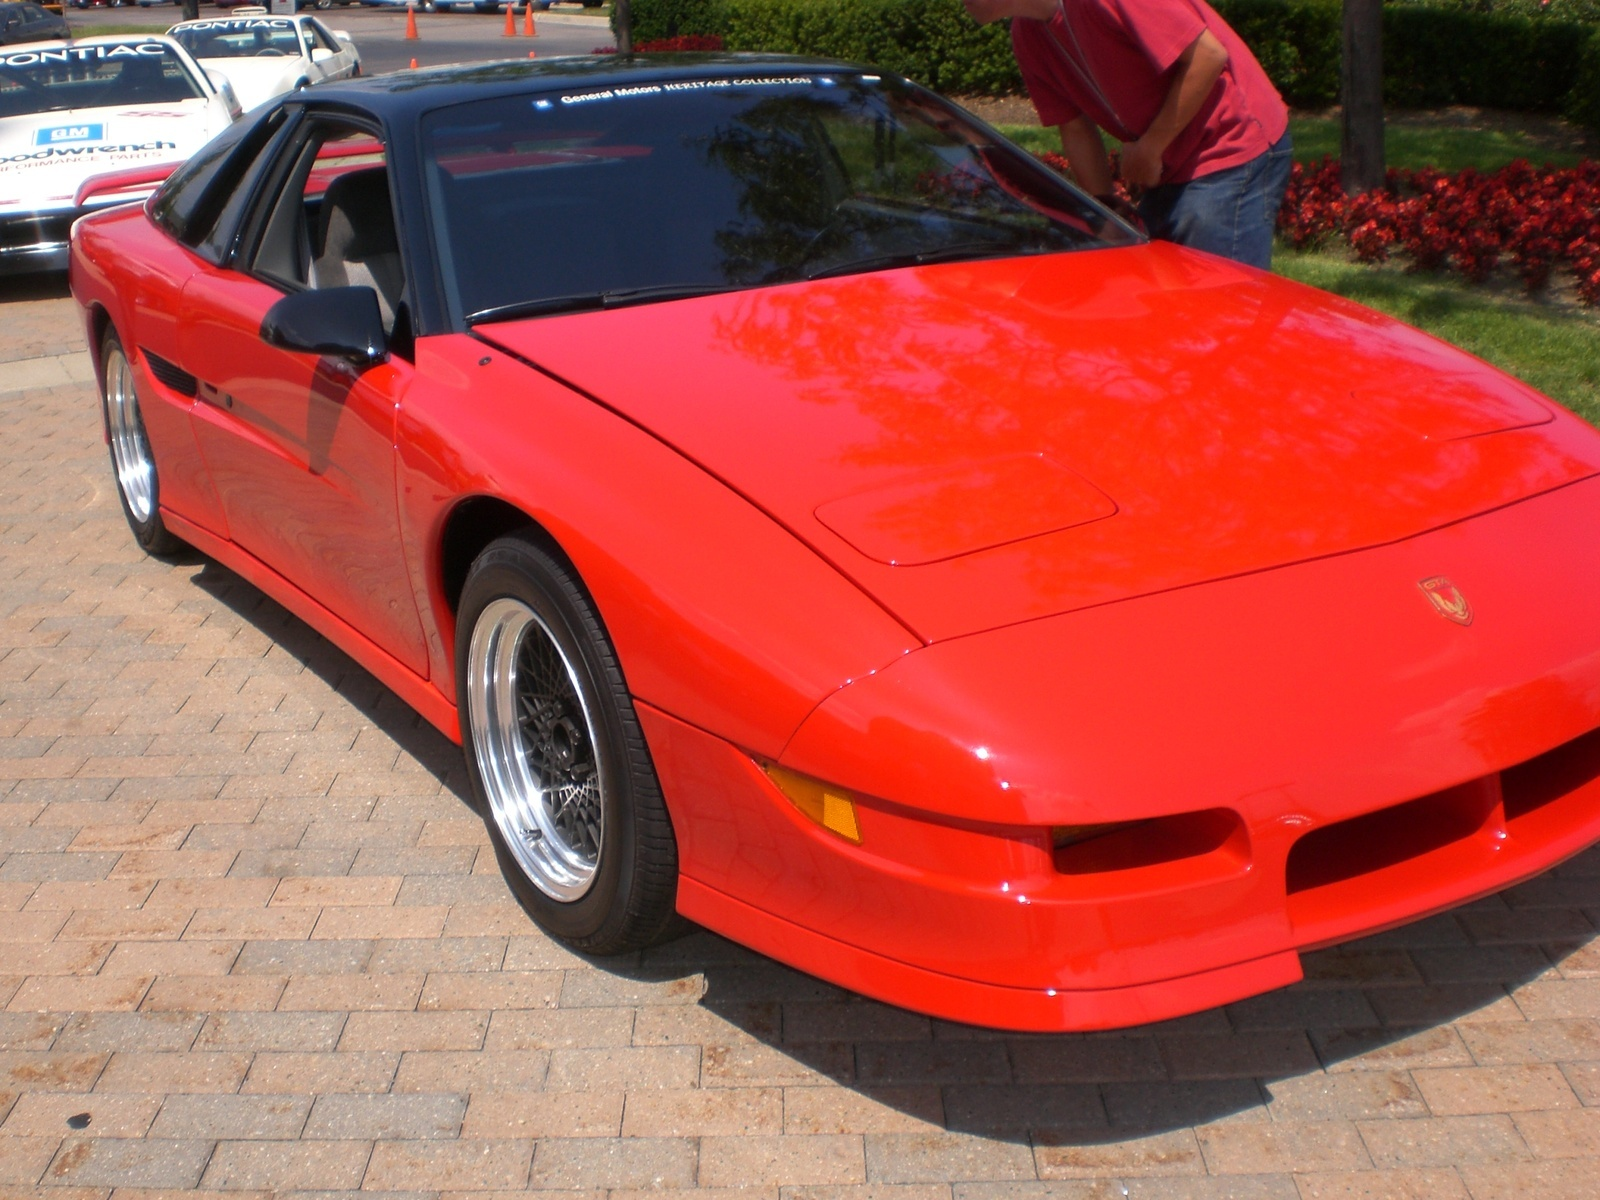 Pontiac Fiero Questions What Year Was The Last Year That The Fiero